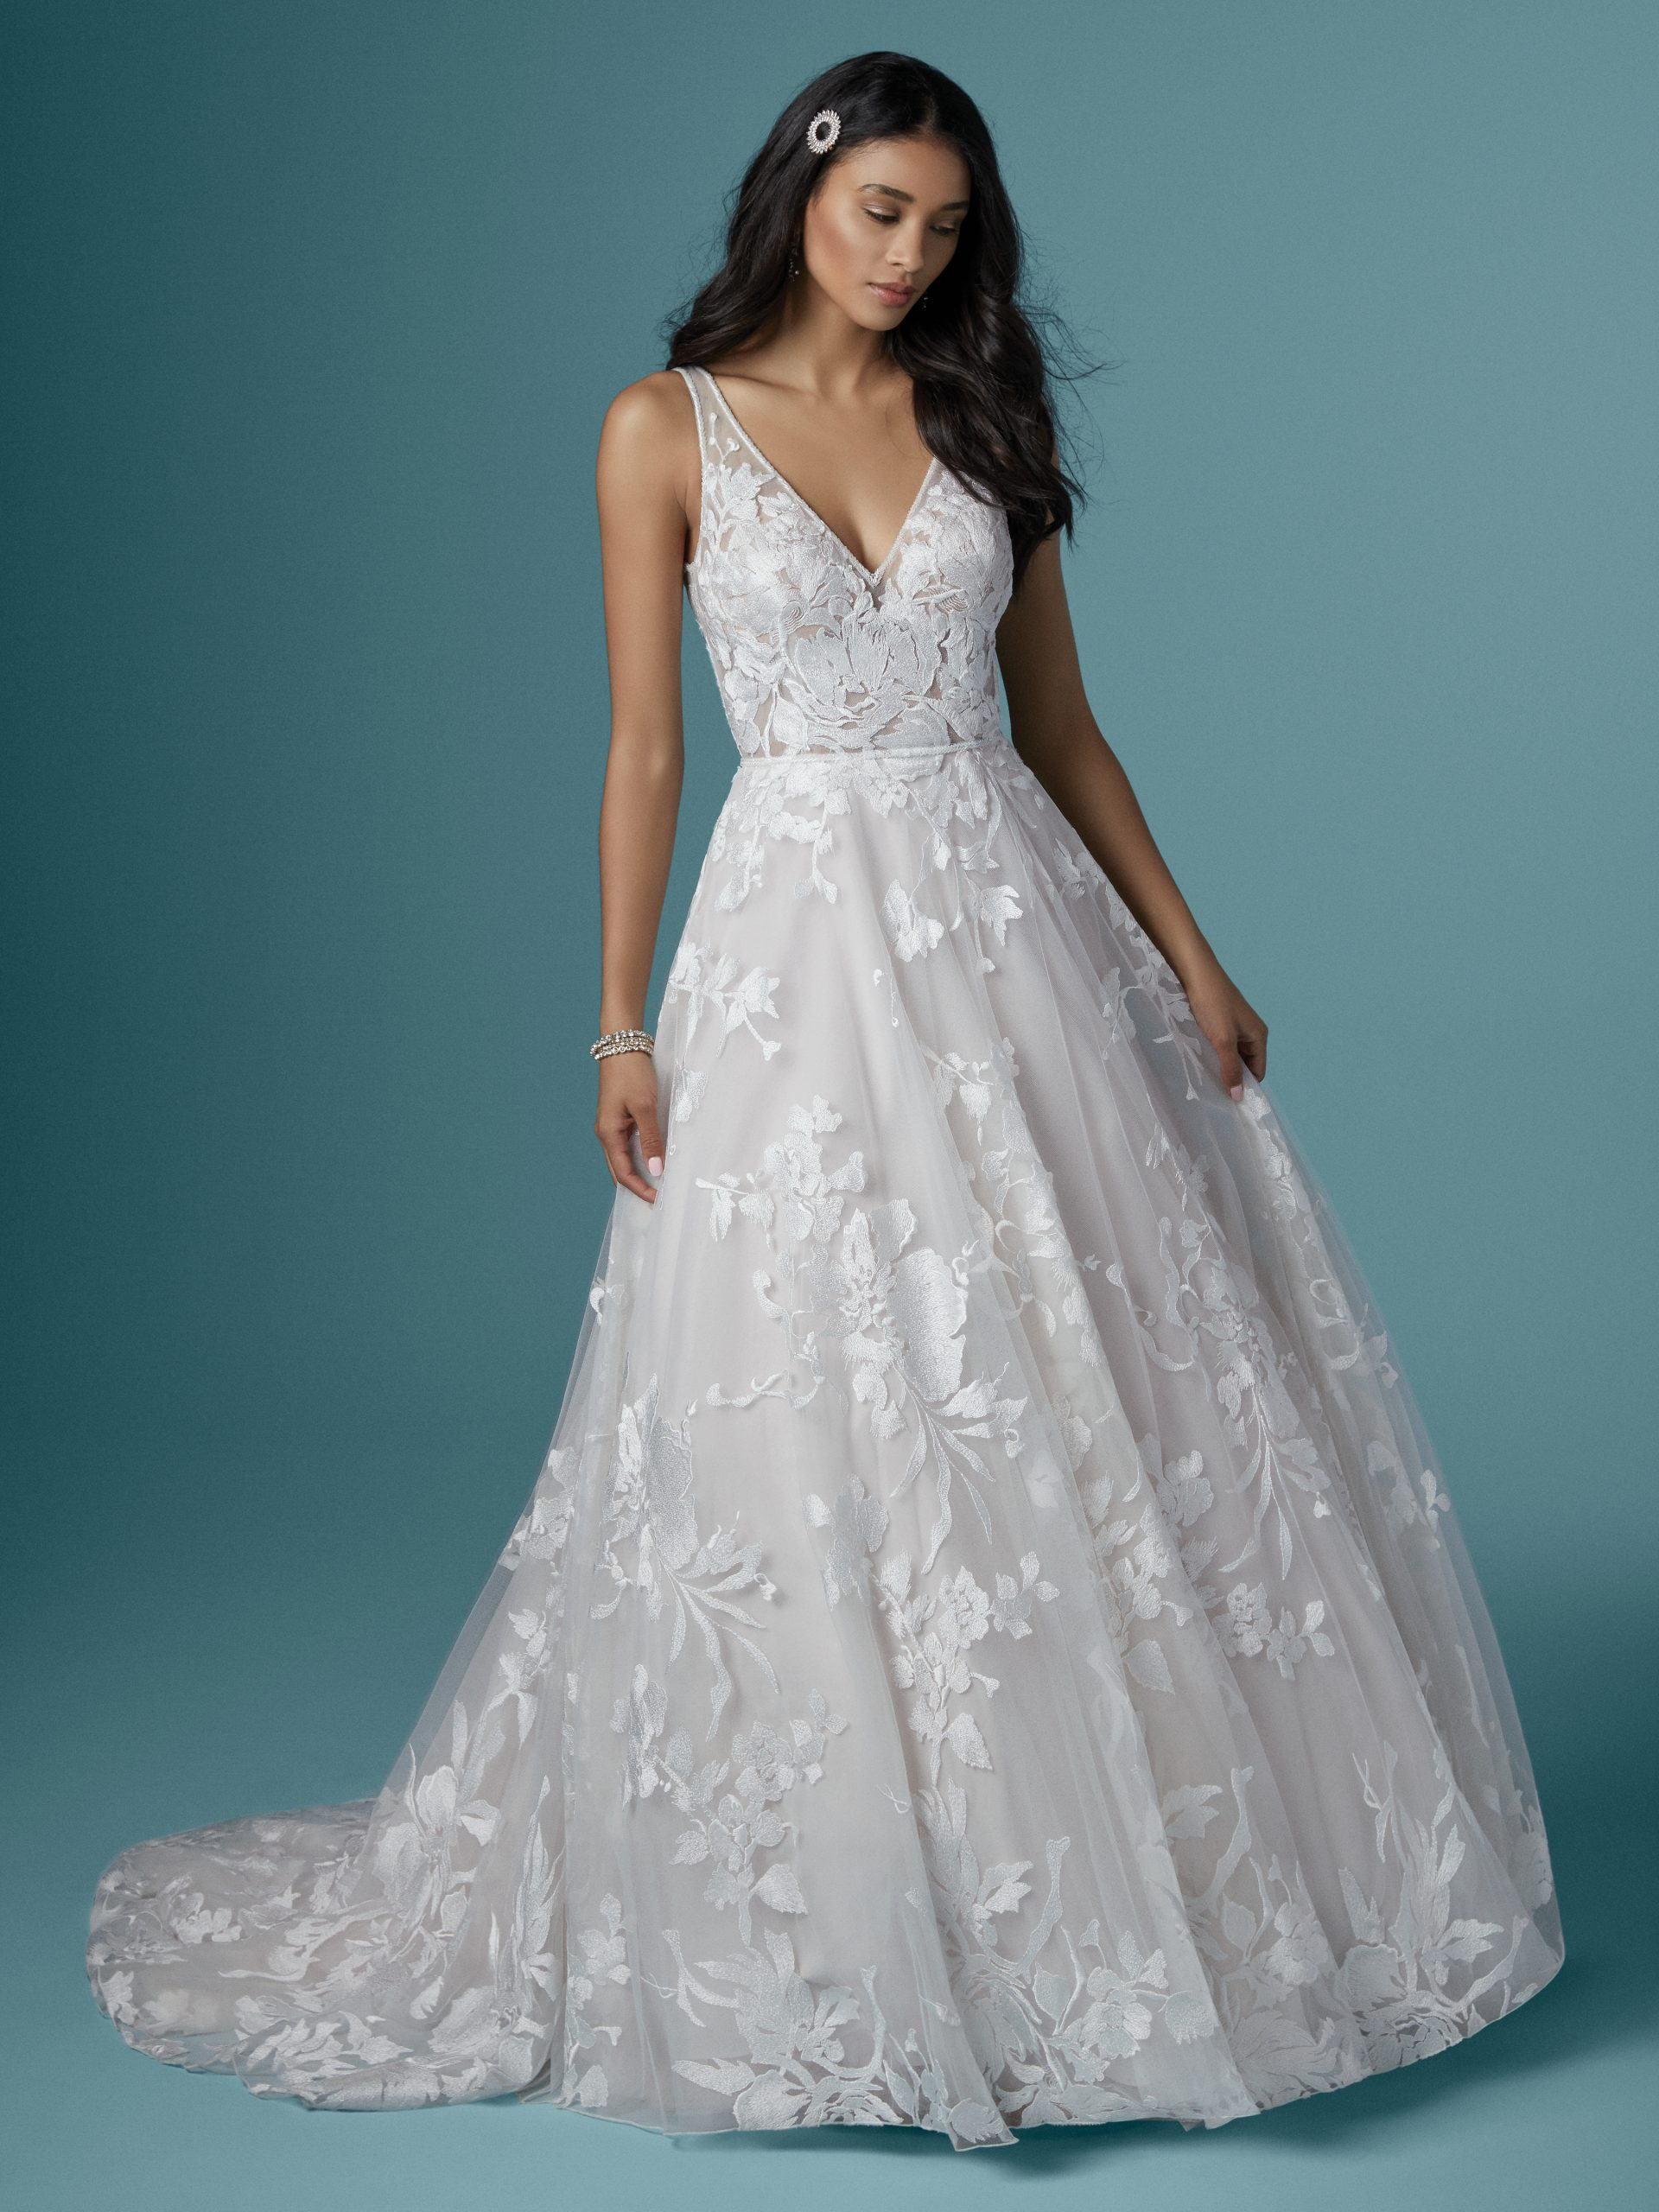 Model Wearing Lightweight A-line Wedding Dress Called Sasha by Maggie Sottero